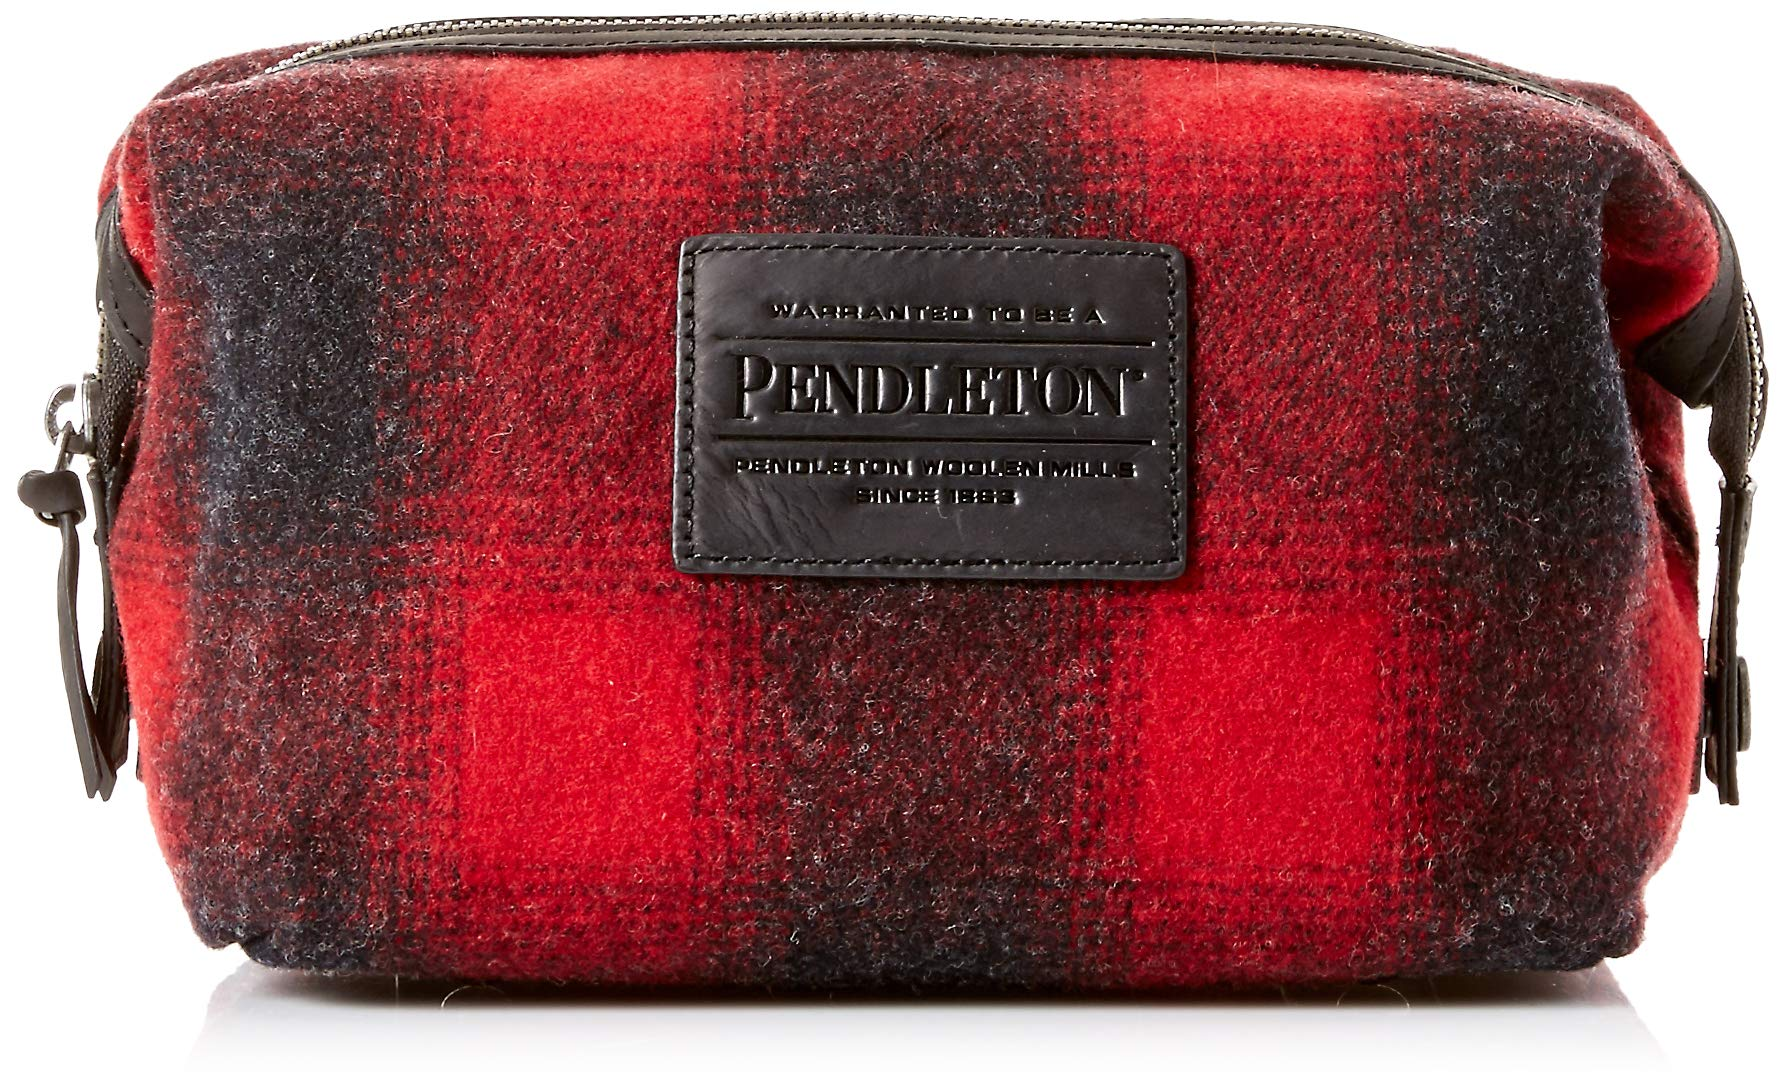 Pendleton Men's Essentials Pouch Bag, Buffalo Check Ombre, One Size